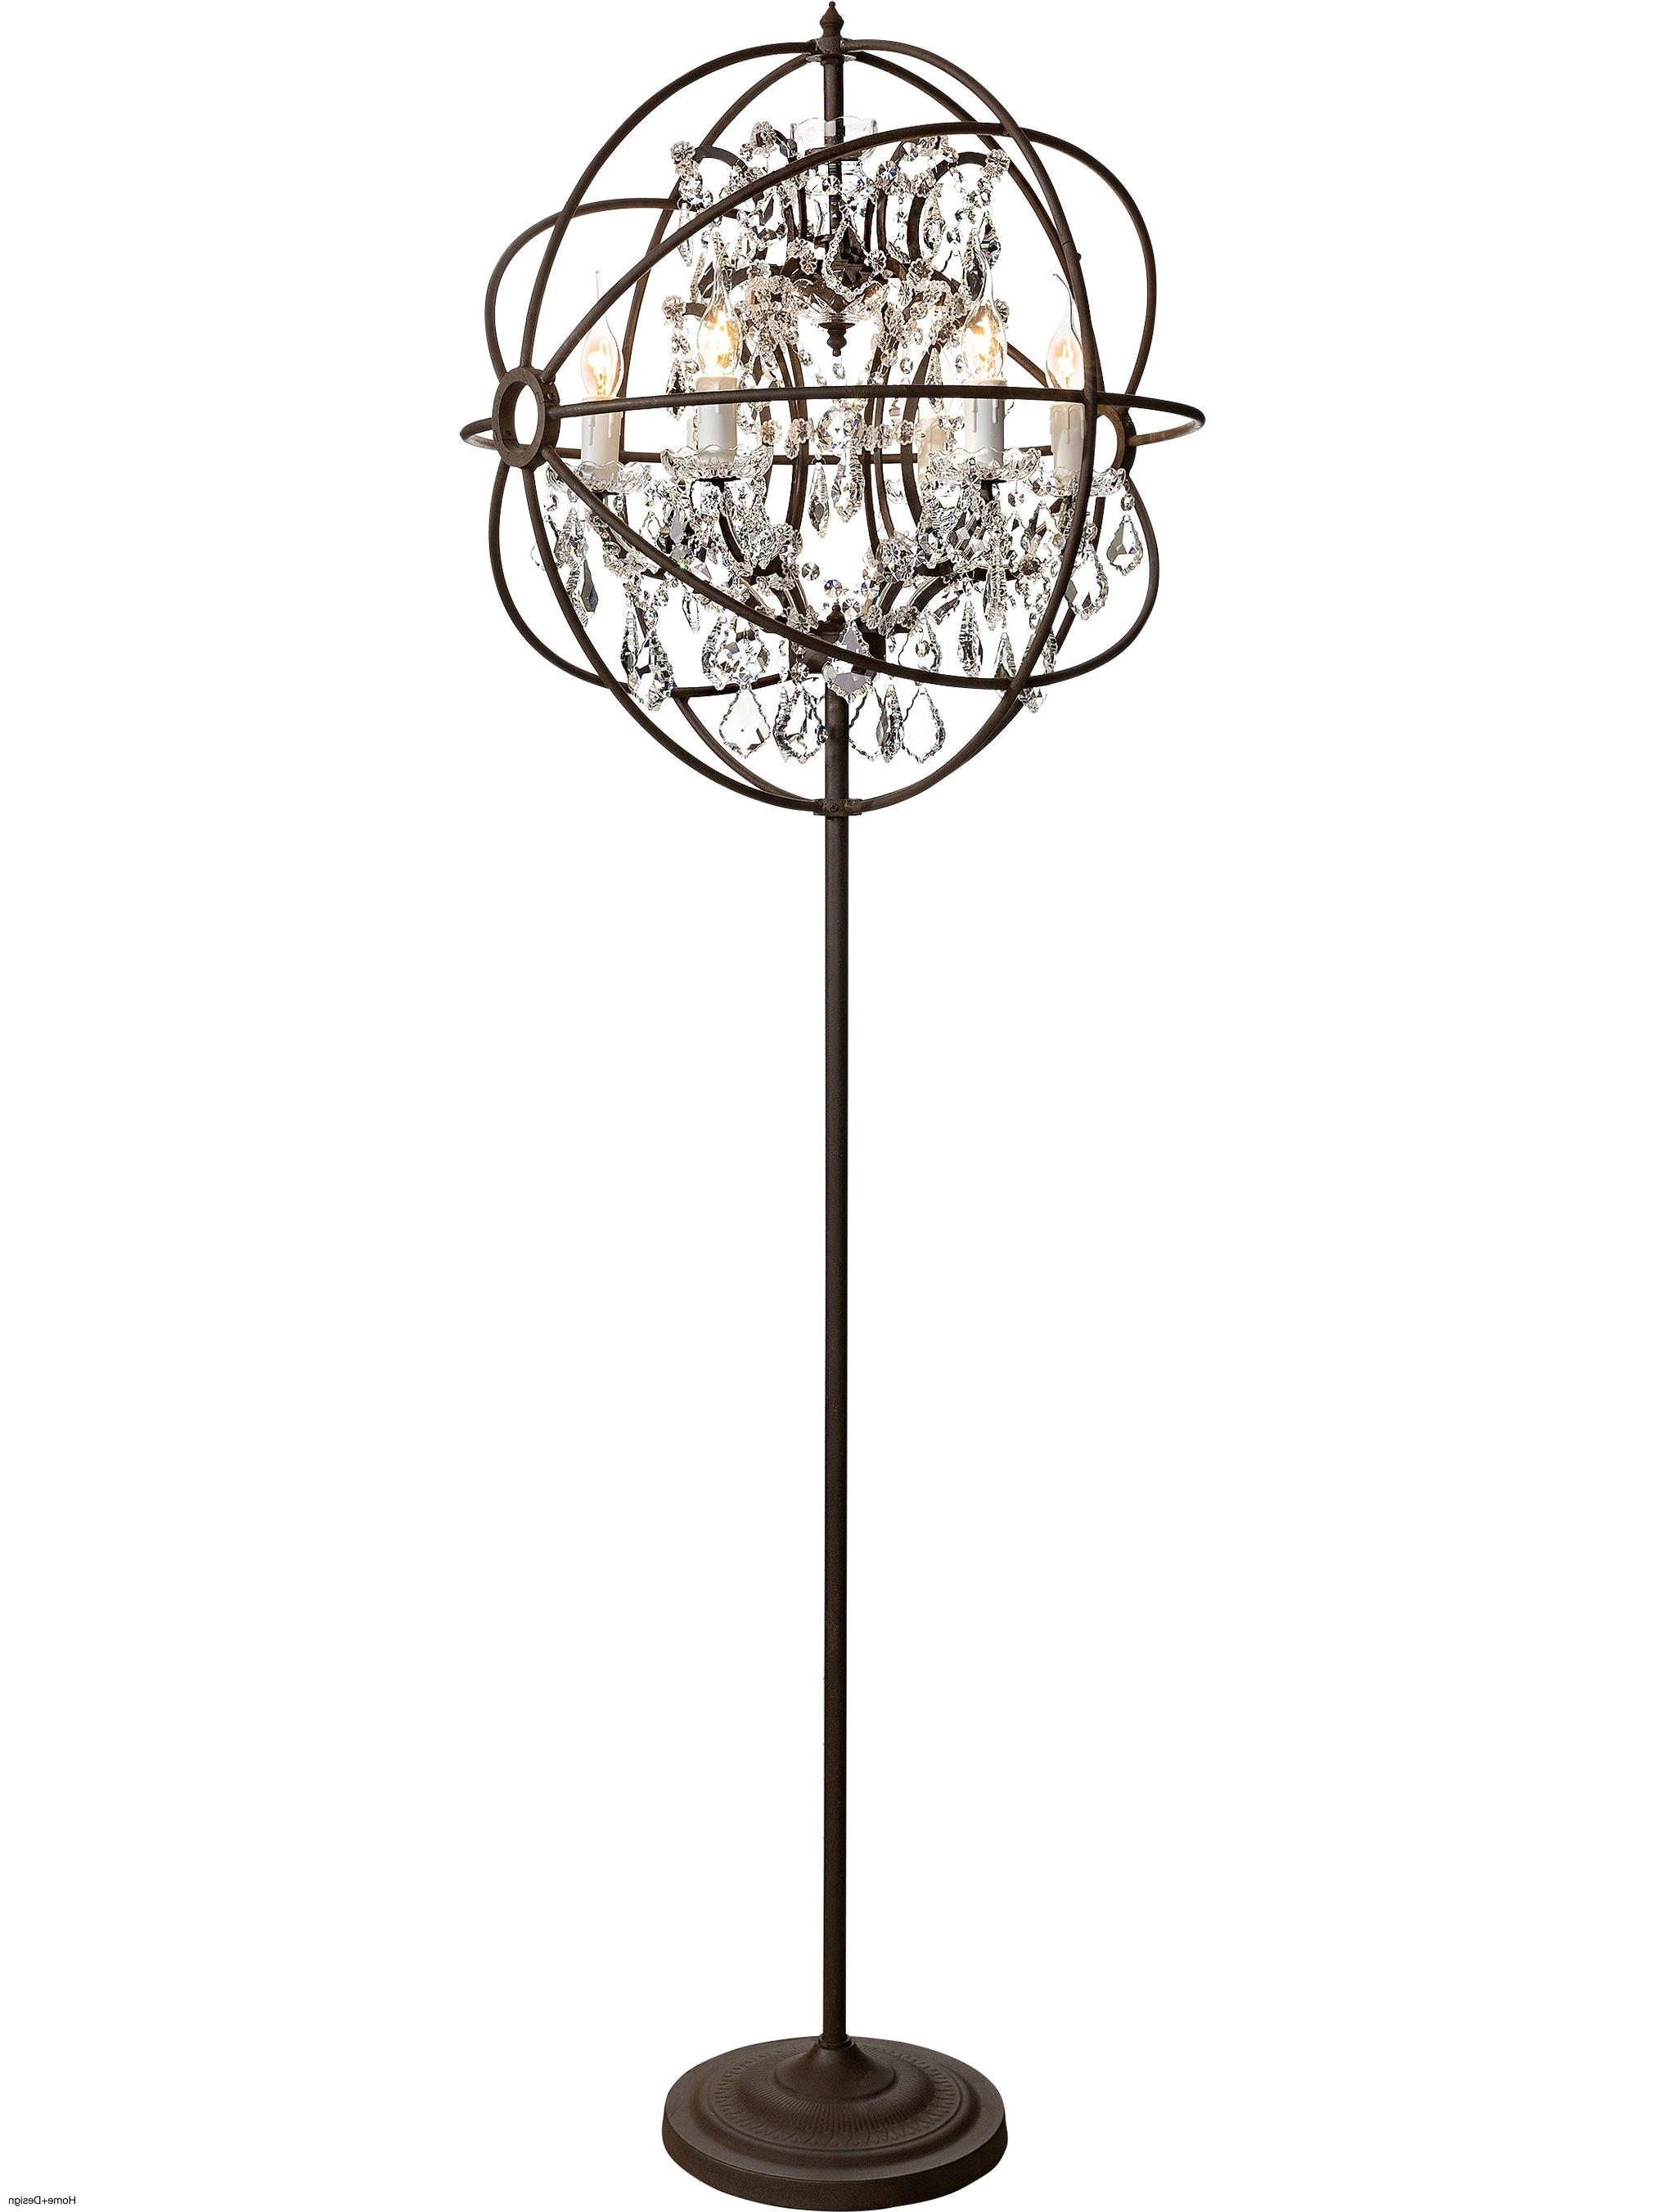 Standing Chandelier Floor Lamp – Chandelier Designs In Latest Free Standing Chandelier Lamps (View 7 of 20)